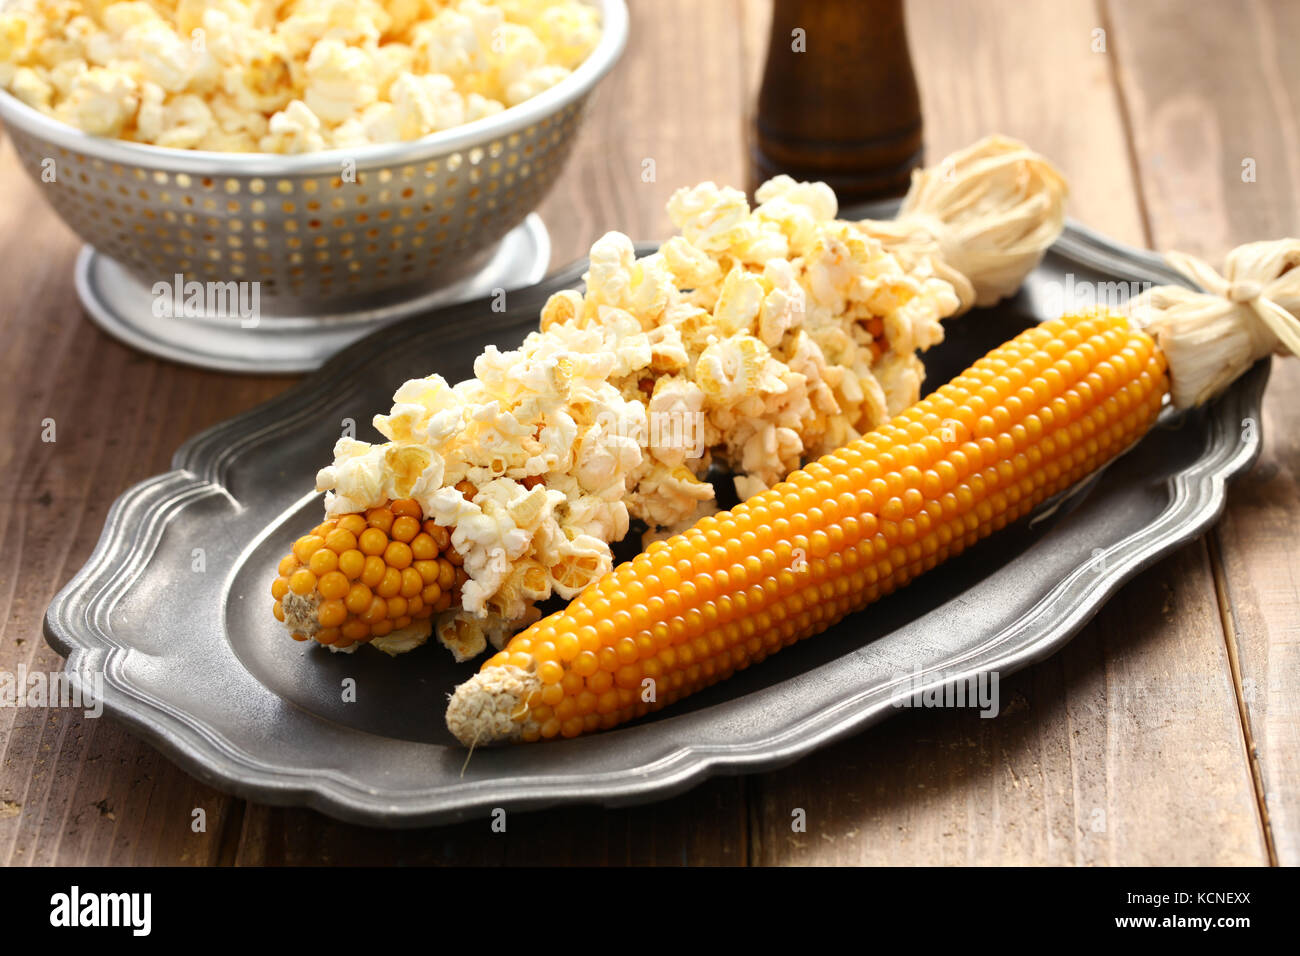 how to make popcorn from corn in microwave